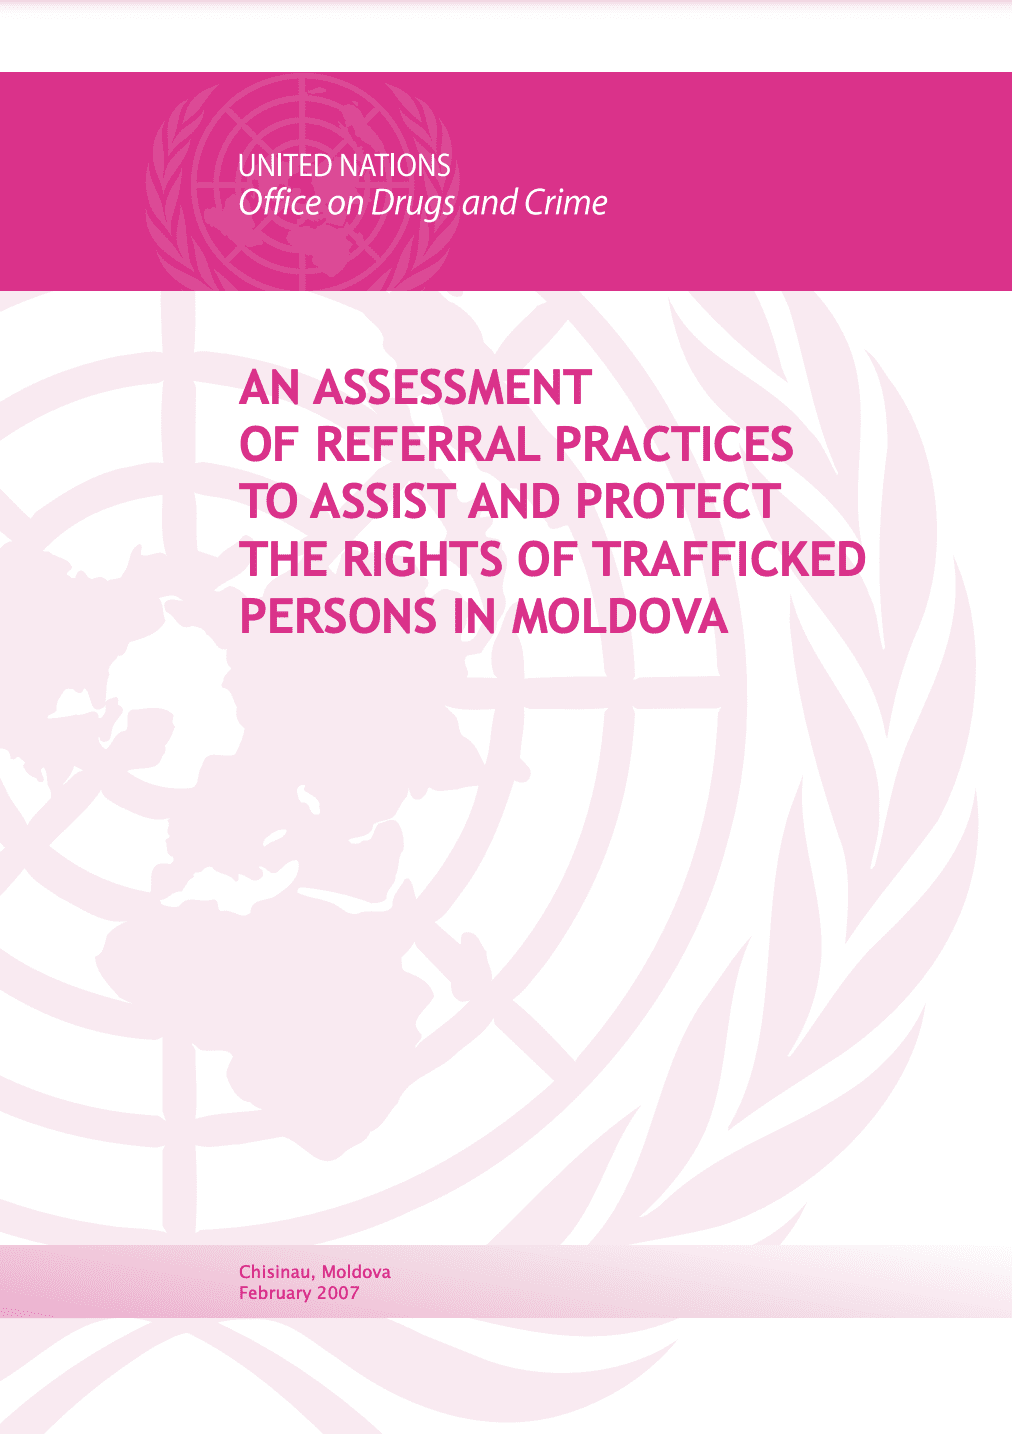 An Assessment of Referral Practices to Assist and Protect the Rights of Trafficked Persons in Moldova